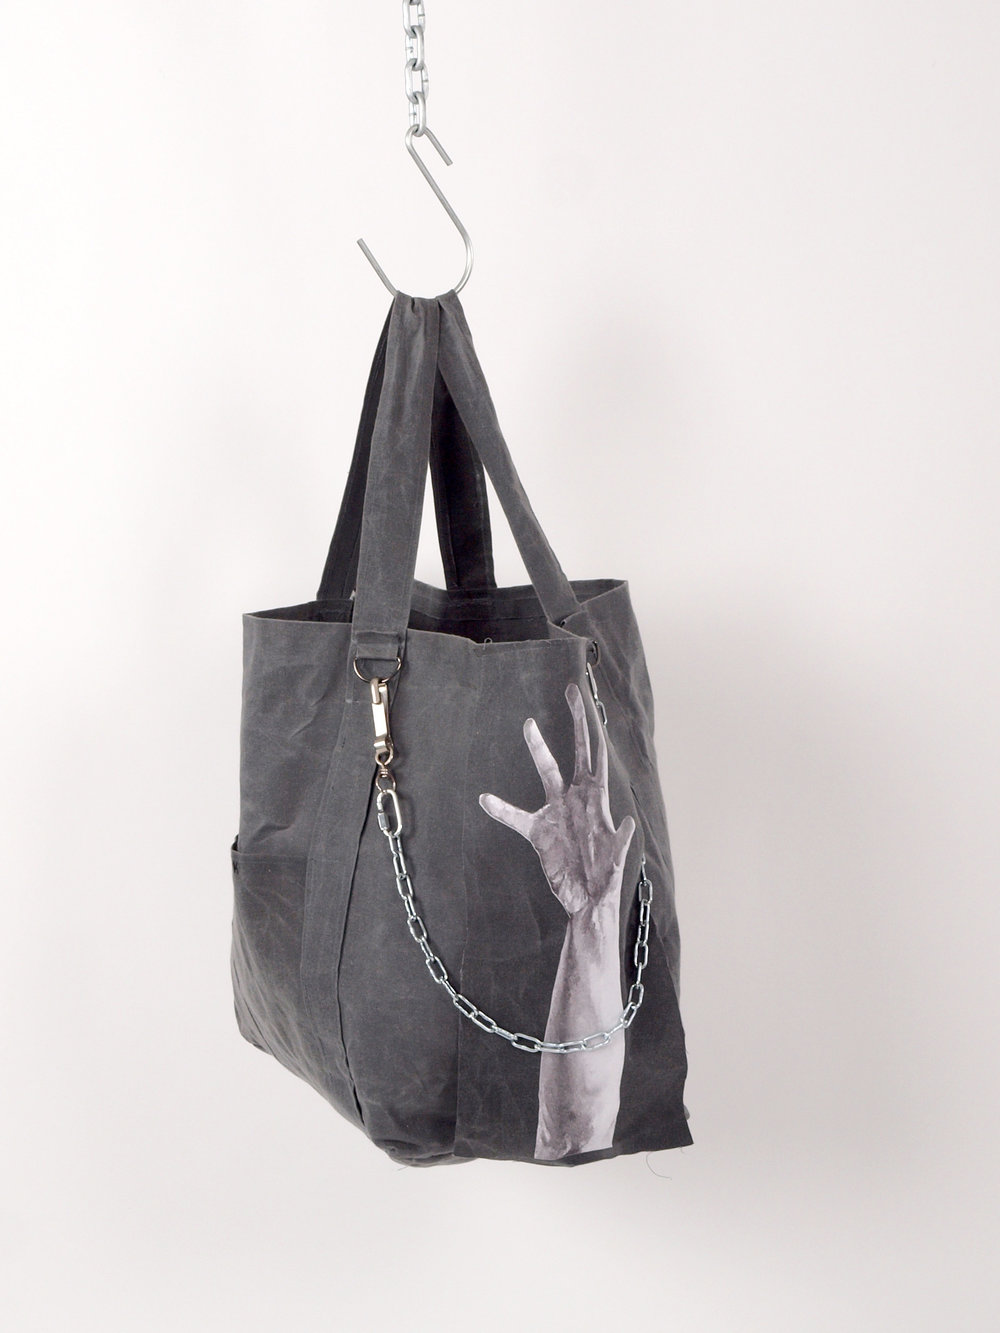 grey tote bag hs.jpg